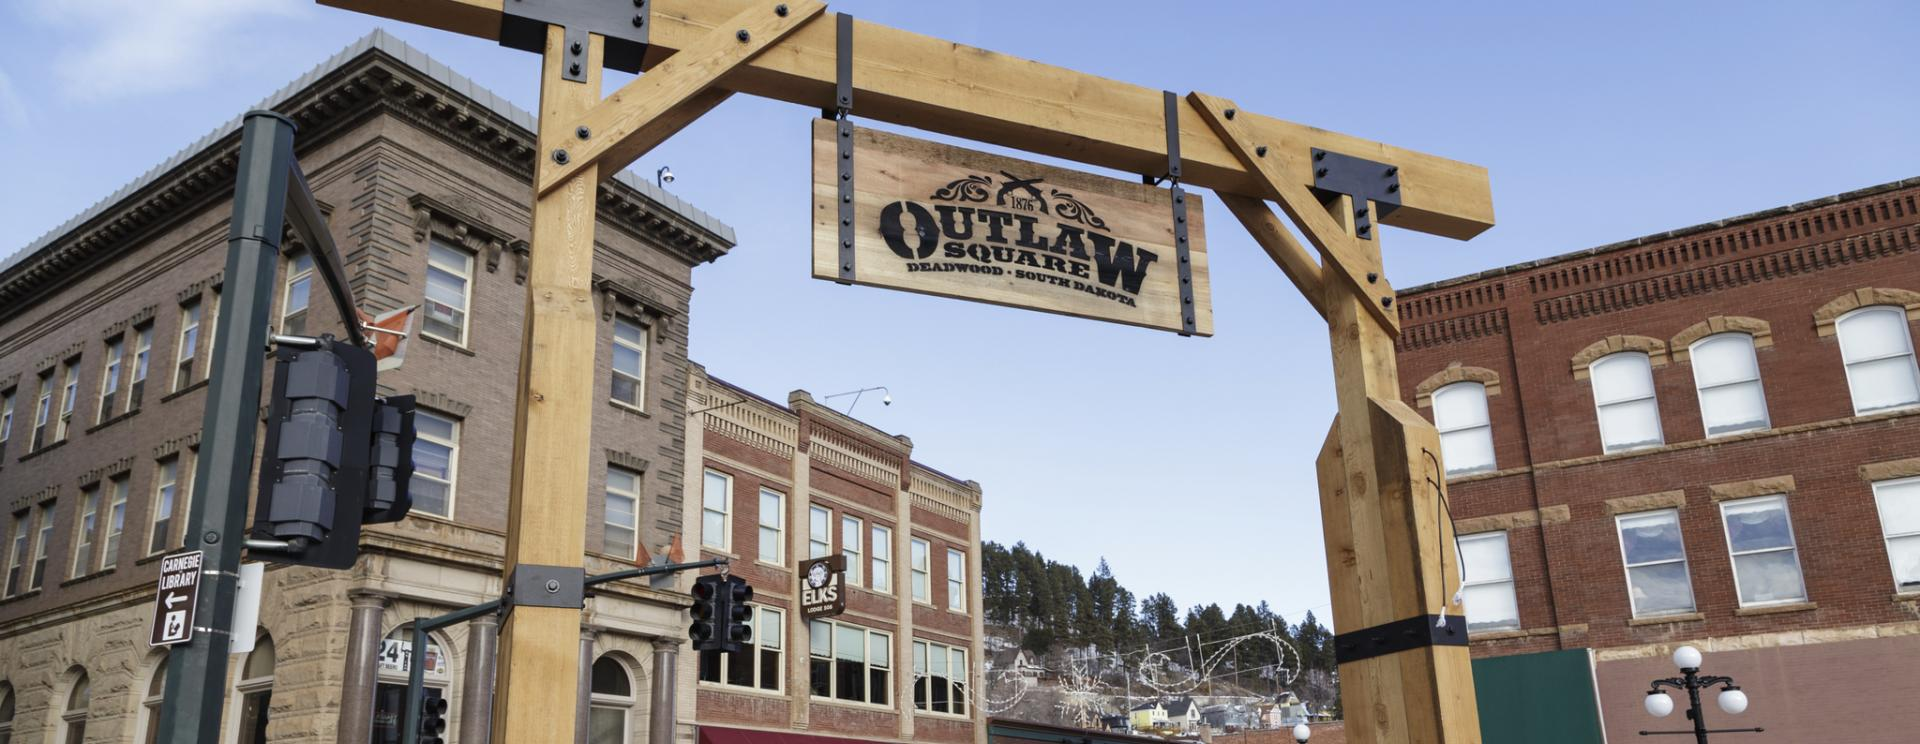 Outlaw Square - Deadwood